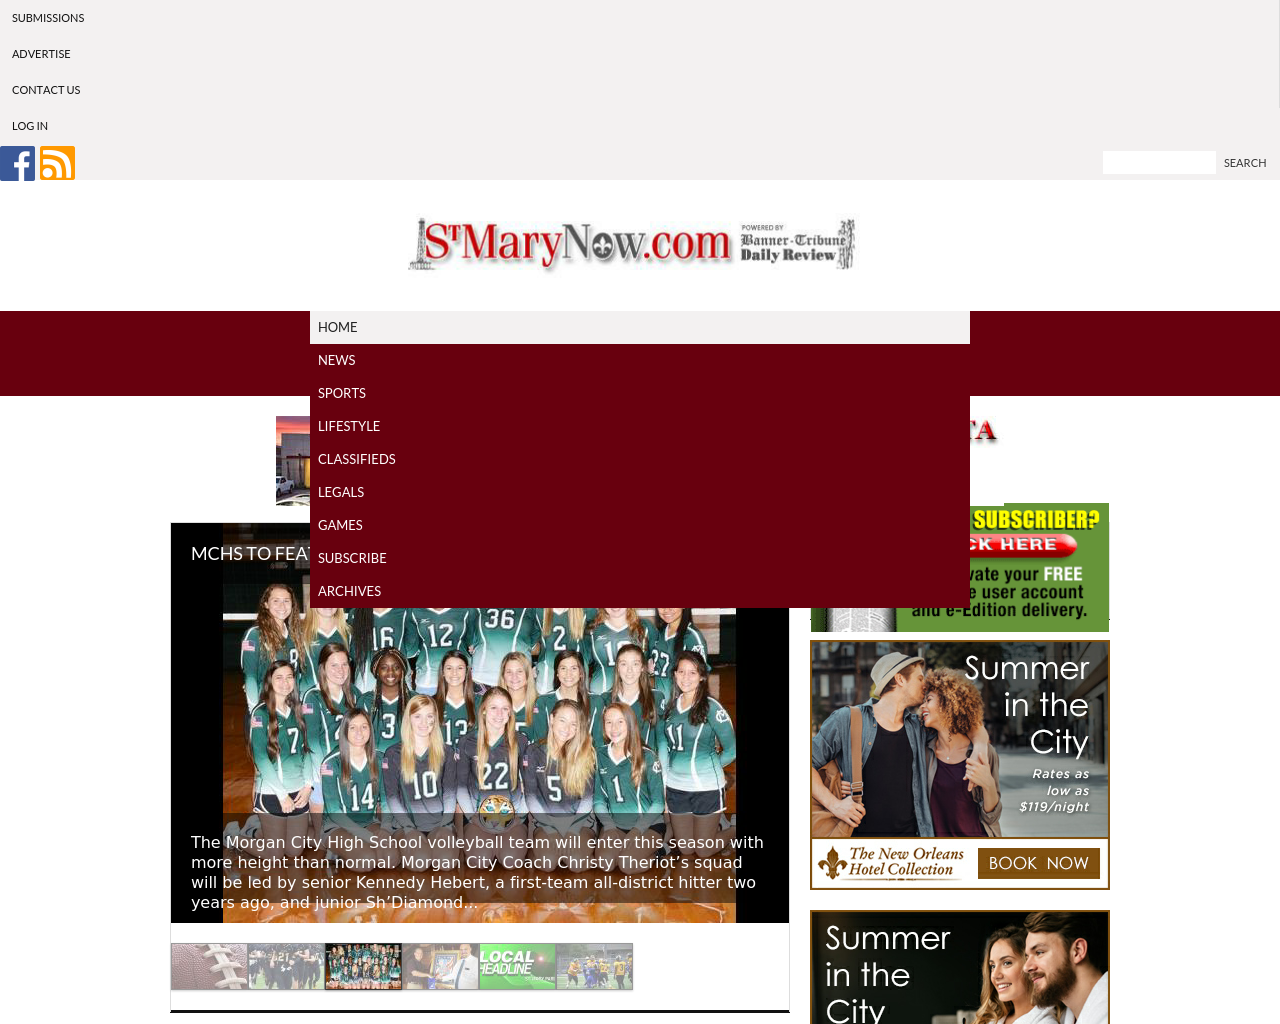 STMaryNow.com-Advertising-Reviews-Pricing